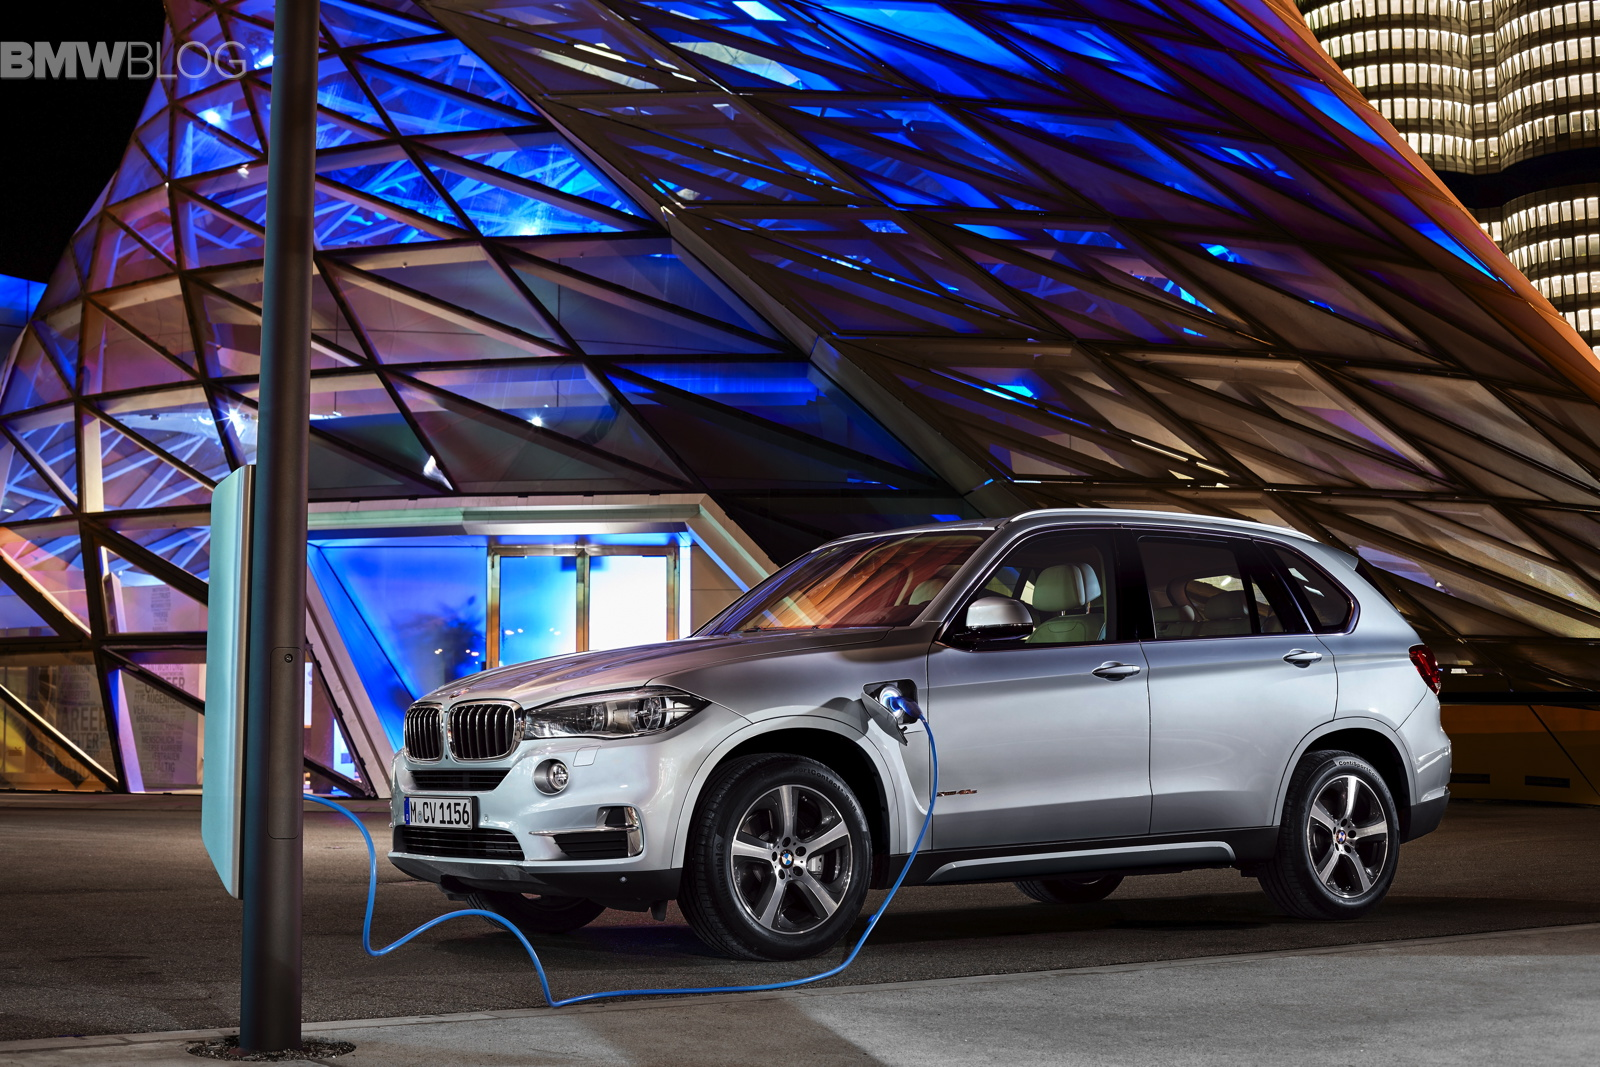 bmw x5 xdrive40e images 12